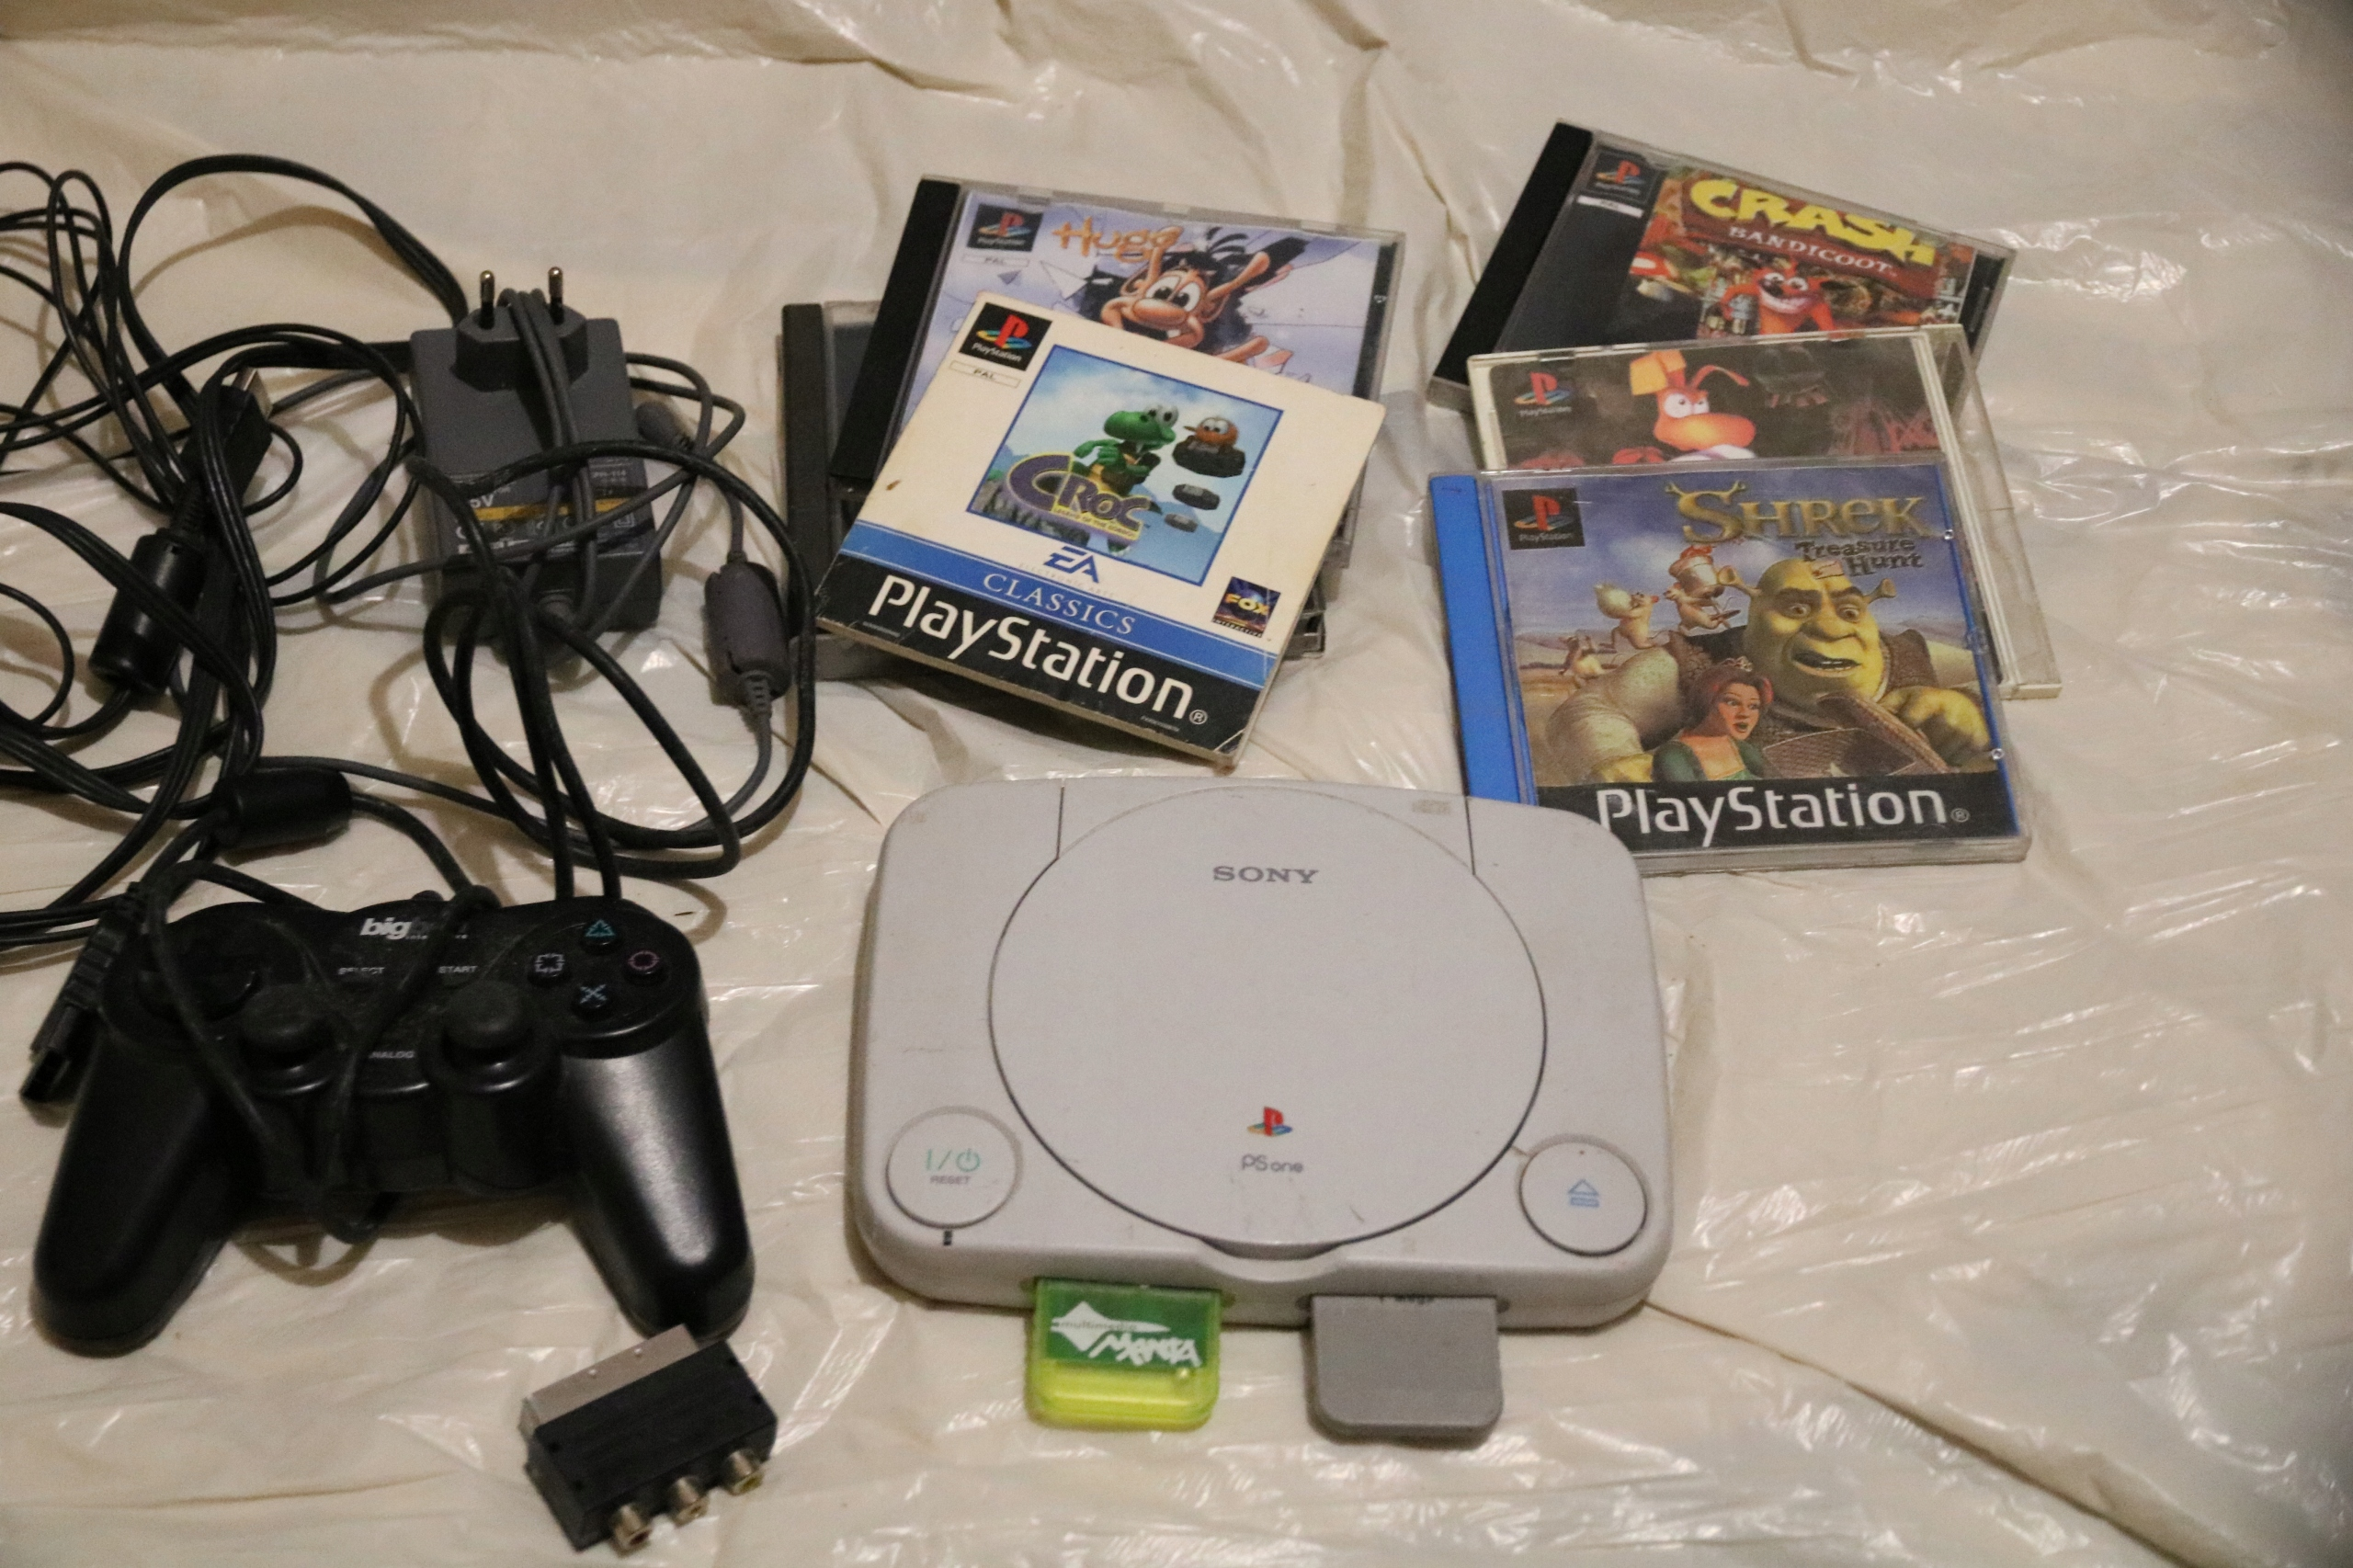 play station sony ,pad,2 karty,kable,5 gier